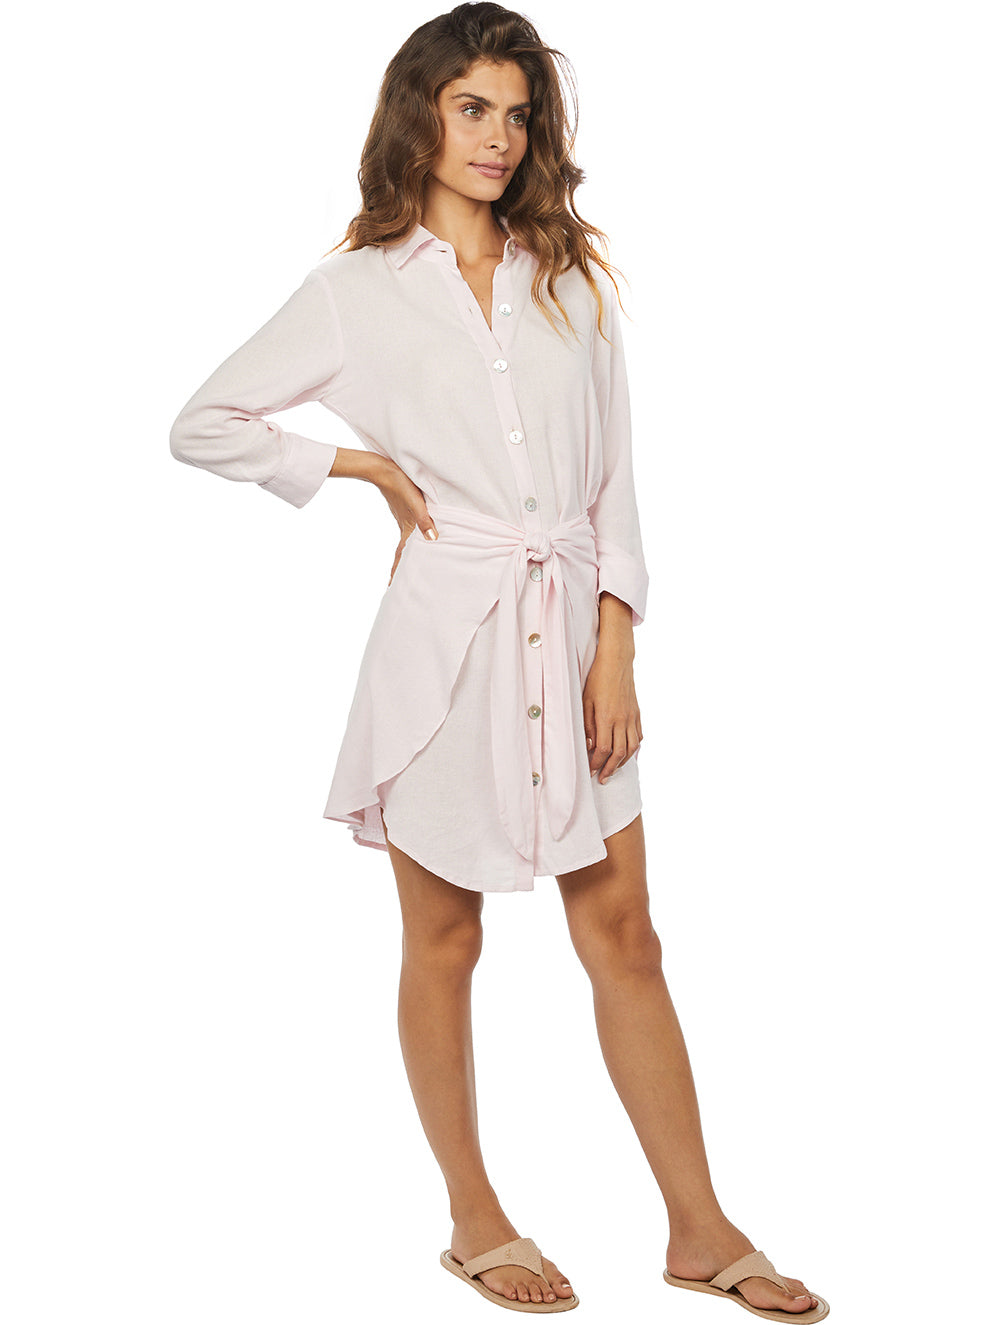 Linen Solid-colors Wrapover Dress